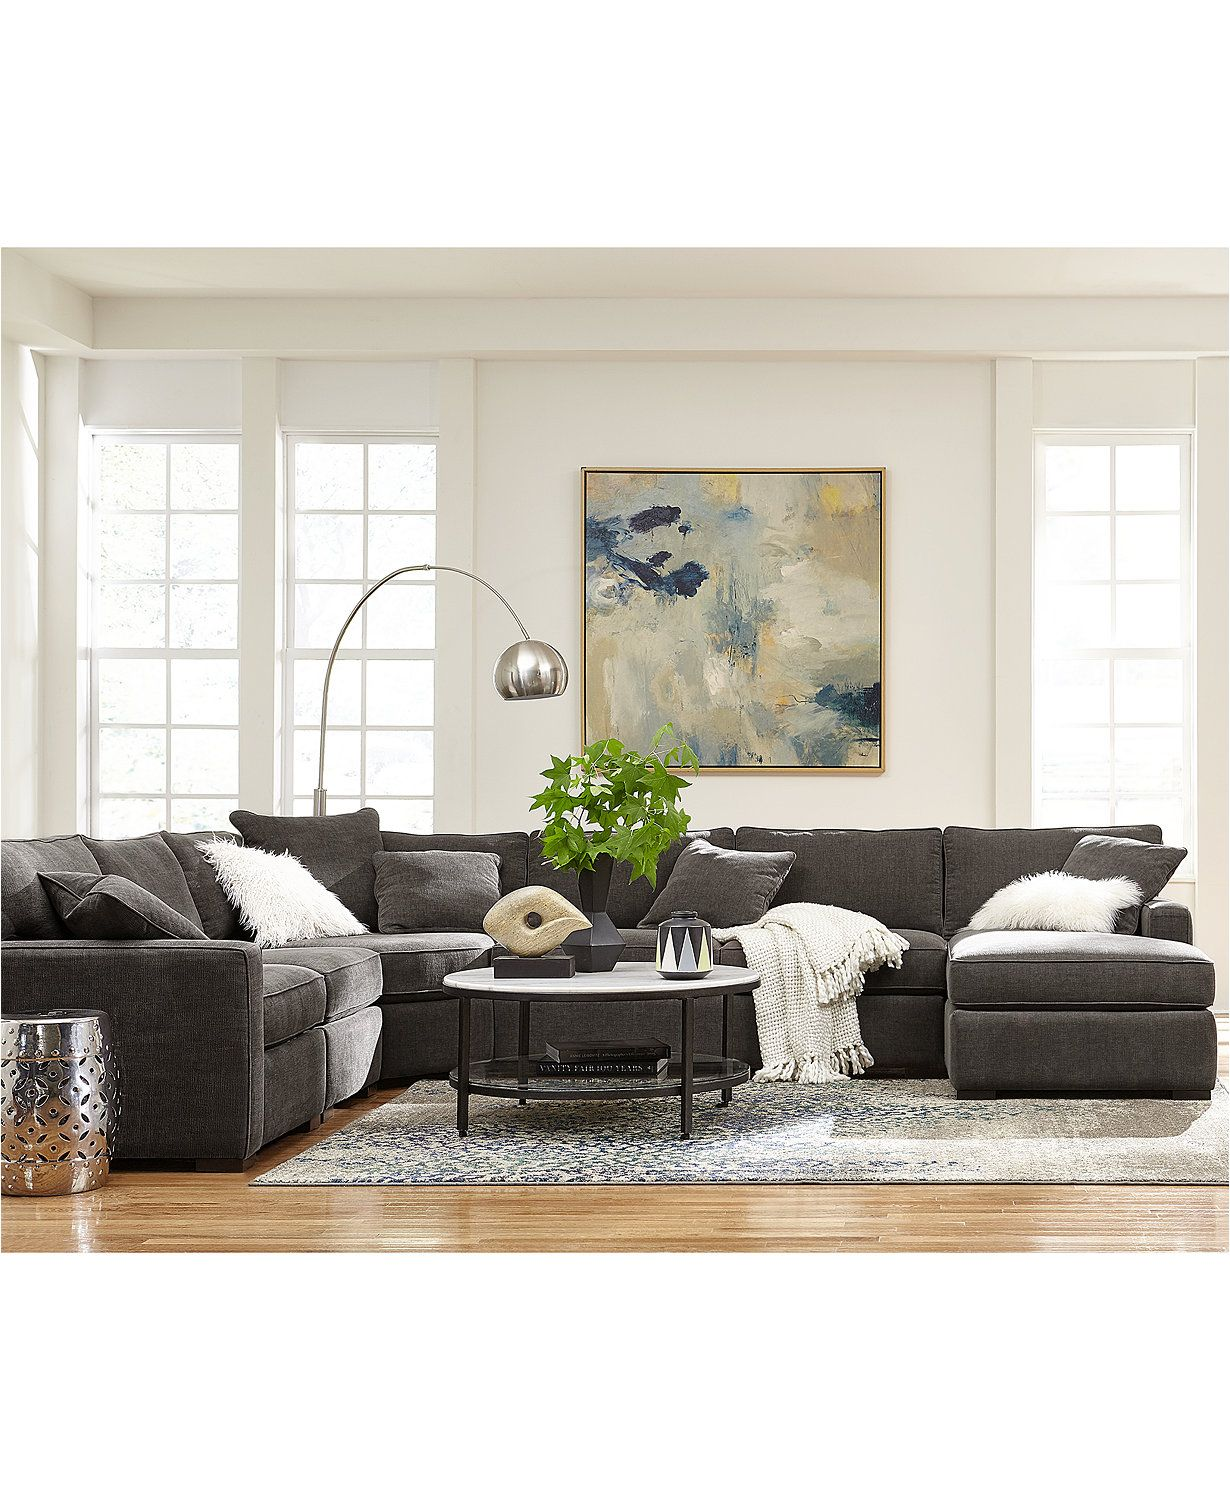 Macys Com Furniture: Radley Fabric Sectional Sofa Collection, Created For Macy